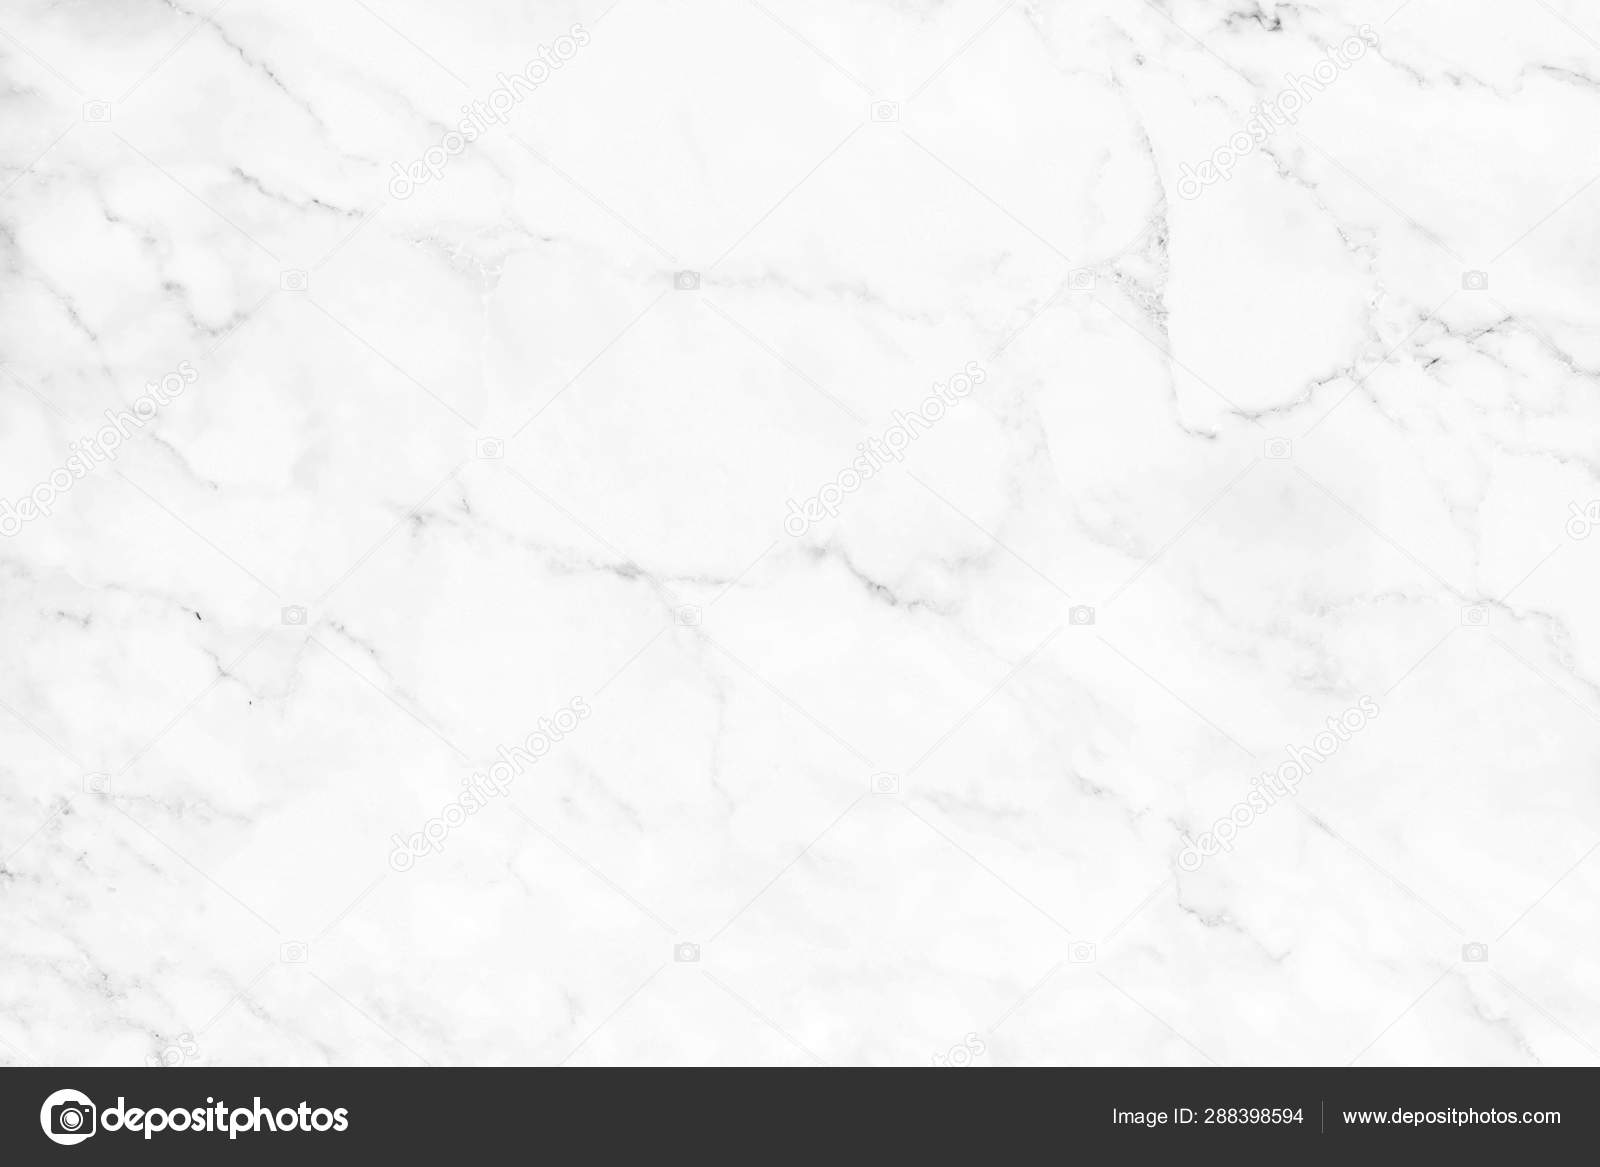 Natural White Marble Texture For Skin Tile Wallpaper Luxurious Background For Design Art Work Stone Ceramic Art Wall Interiors Backdrop Design Marble With High Resolution Stock Photo C Noomubon 288398594